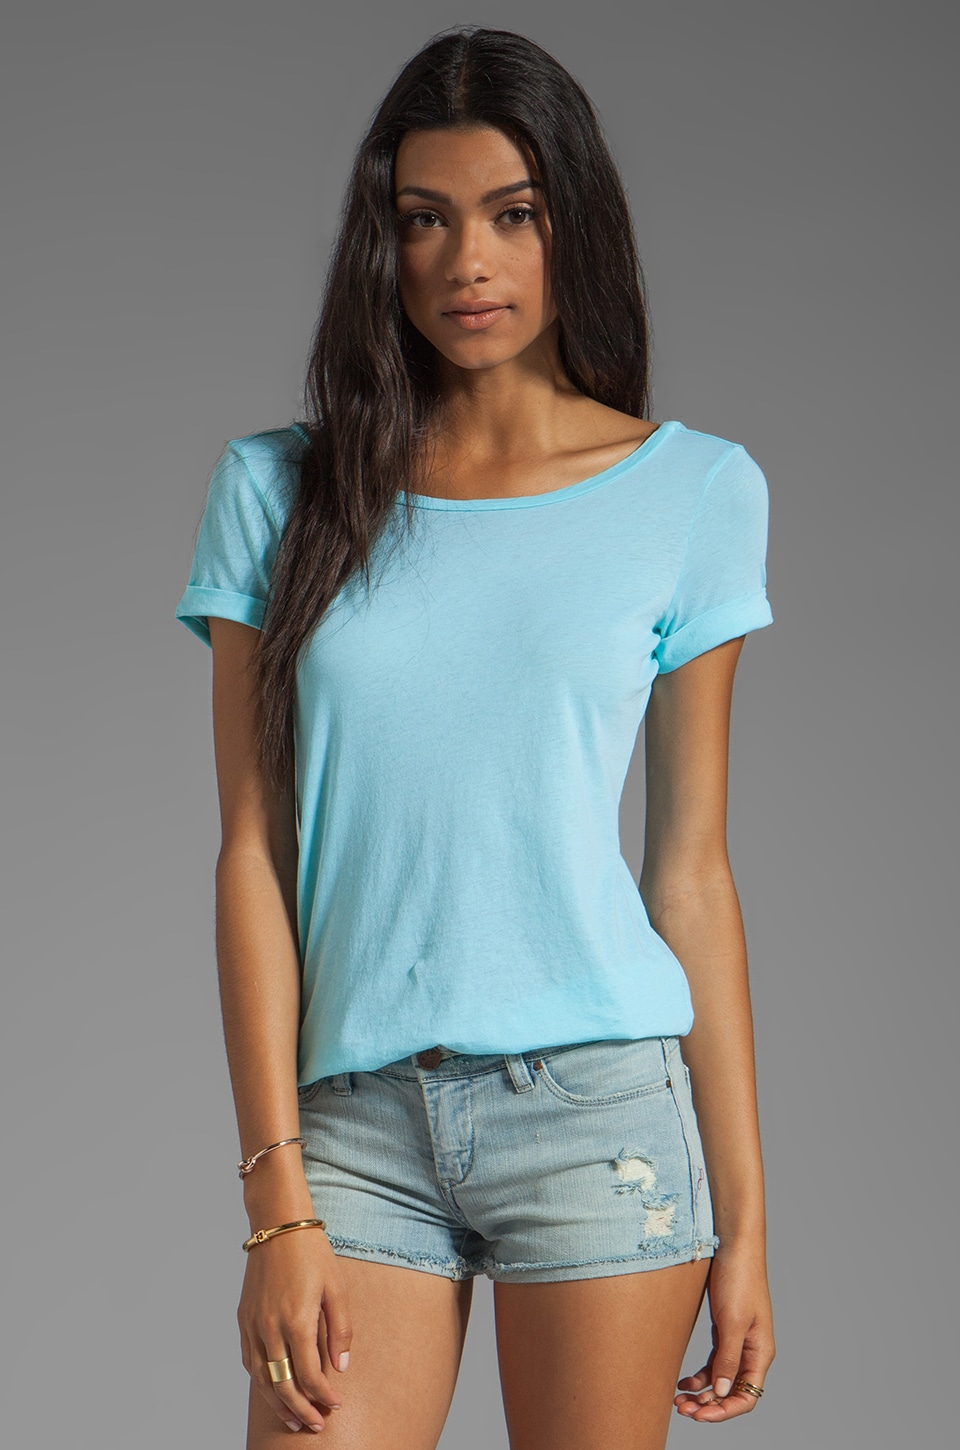 Splendid Vintage Whisper Low Back Tee in Caribbean